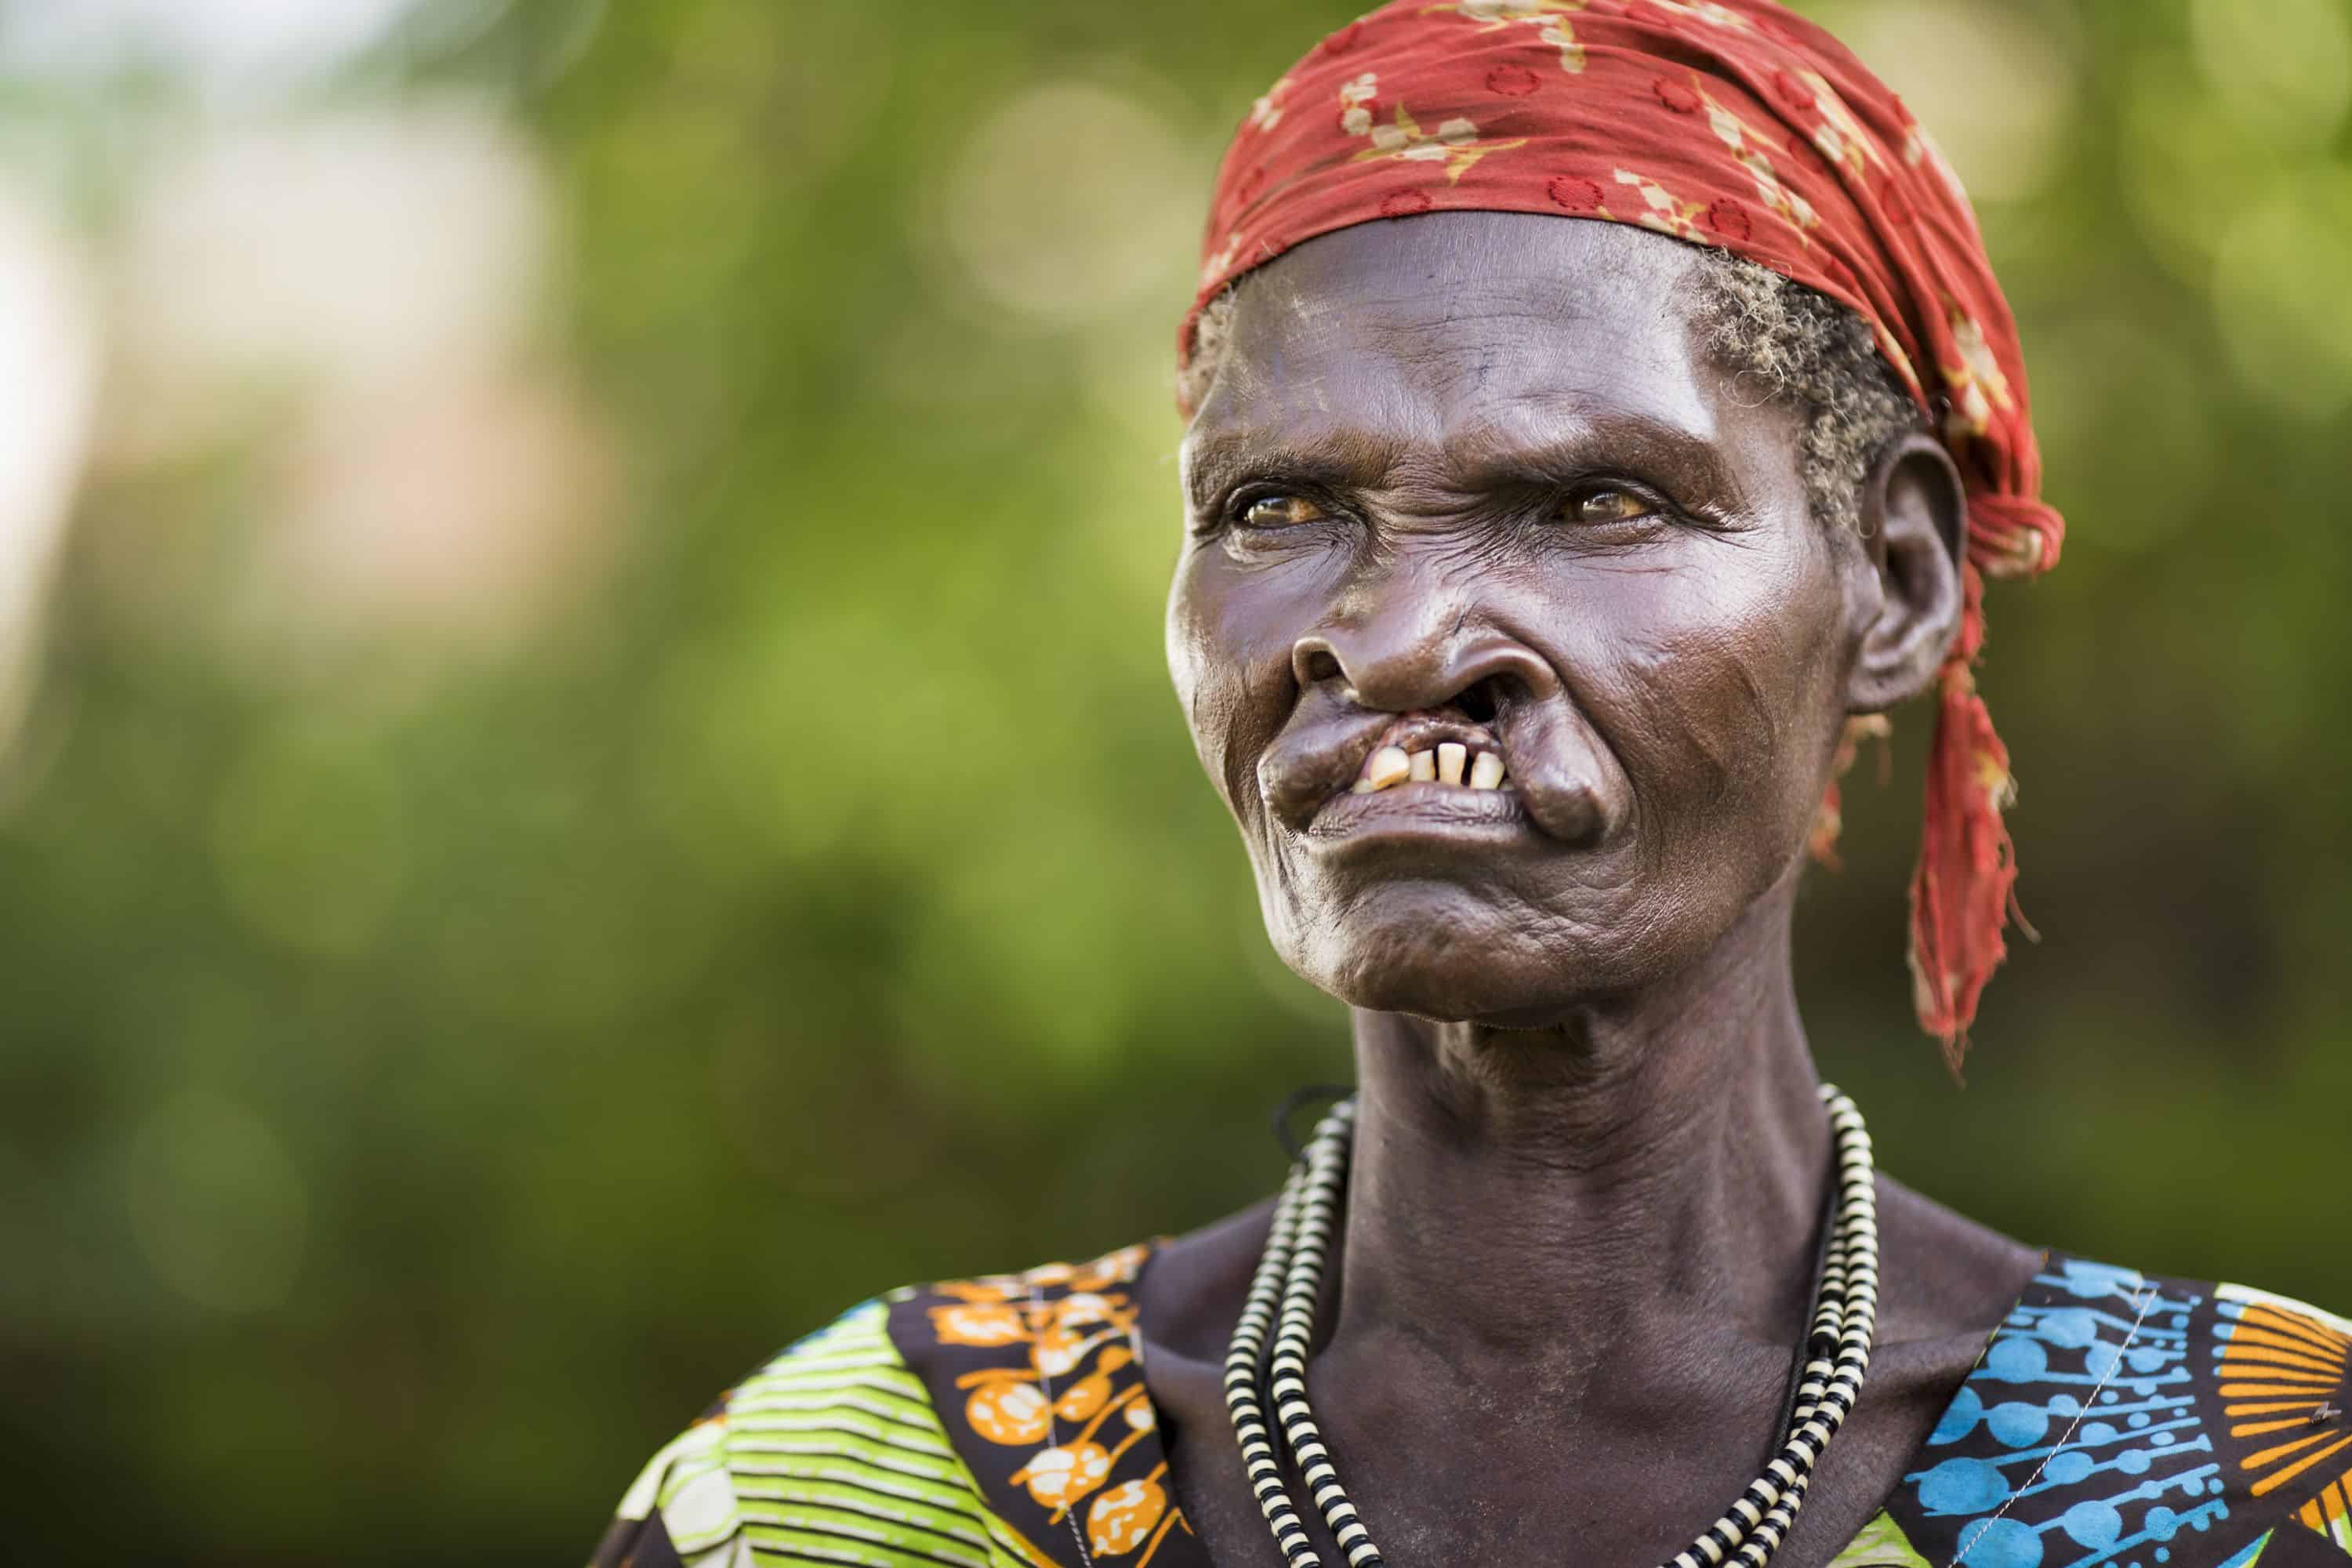 For her entire life Yunisa, 61, has been shunned because of her cleft lip.